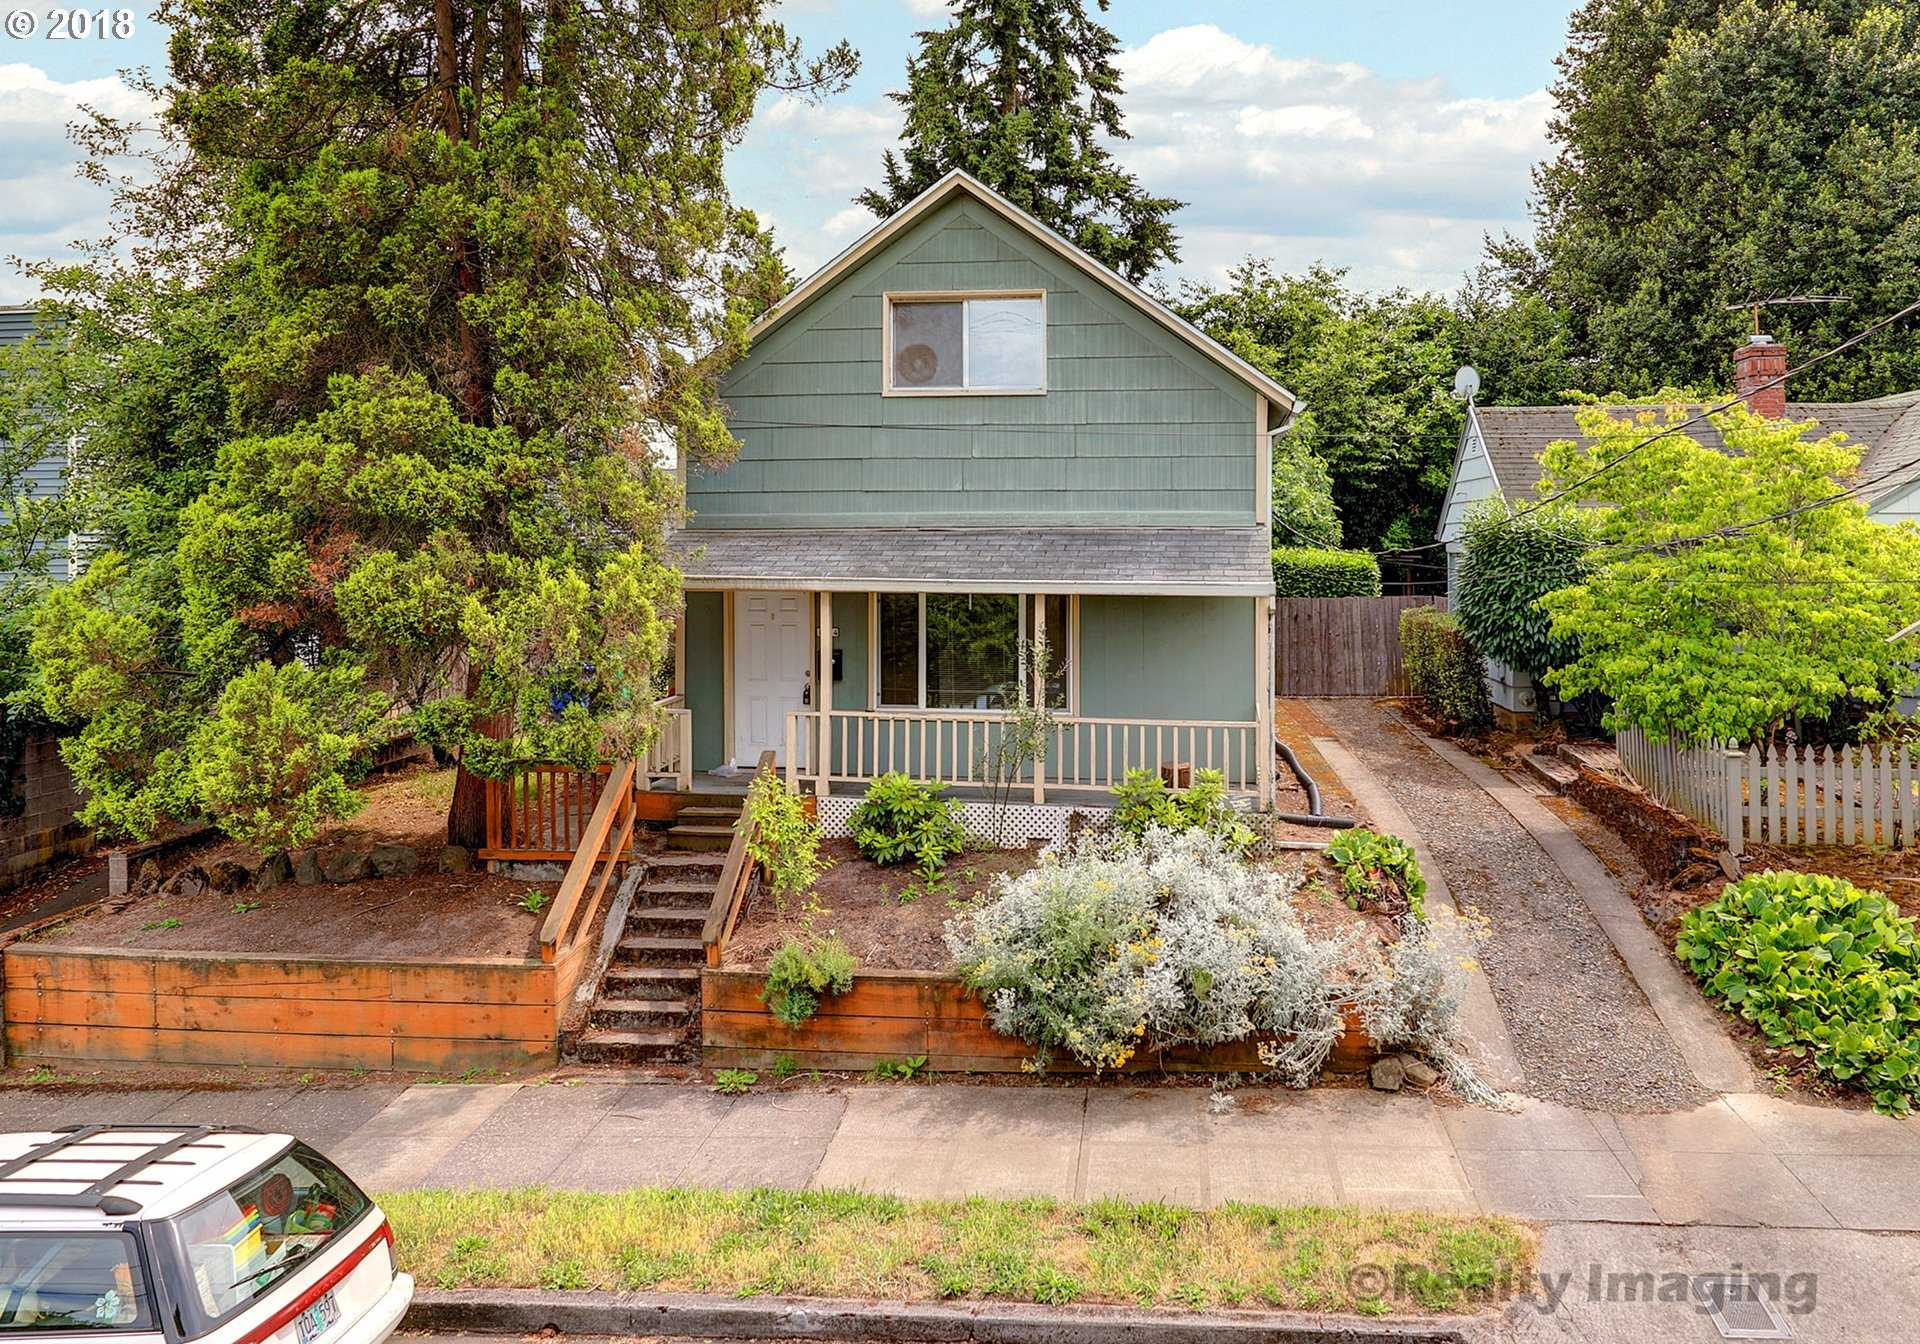 $315,000 - 3Br/1Ba -  for Sale in Sellwood, Portland